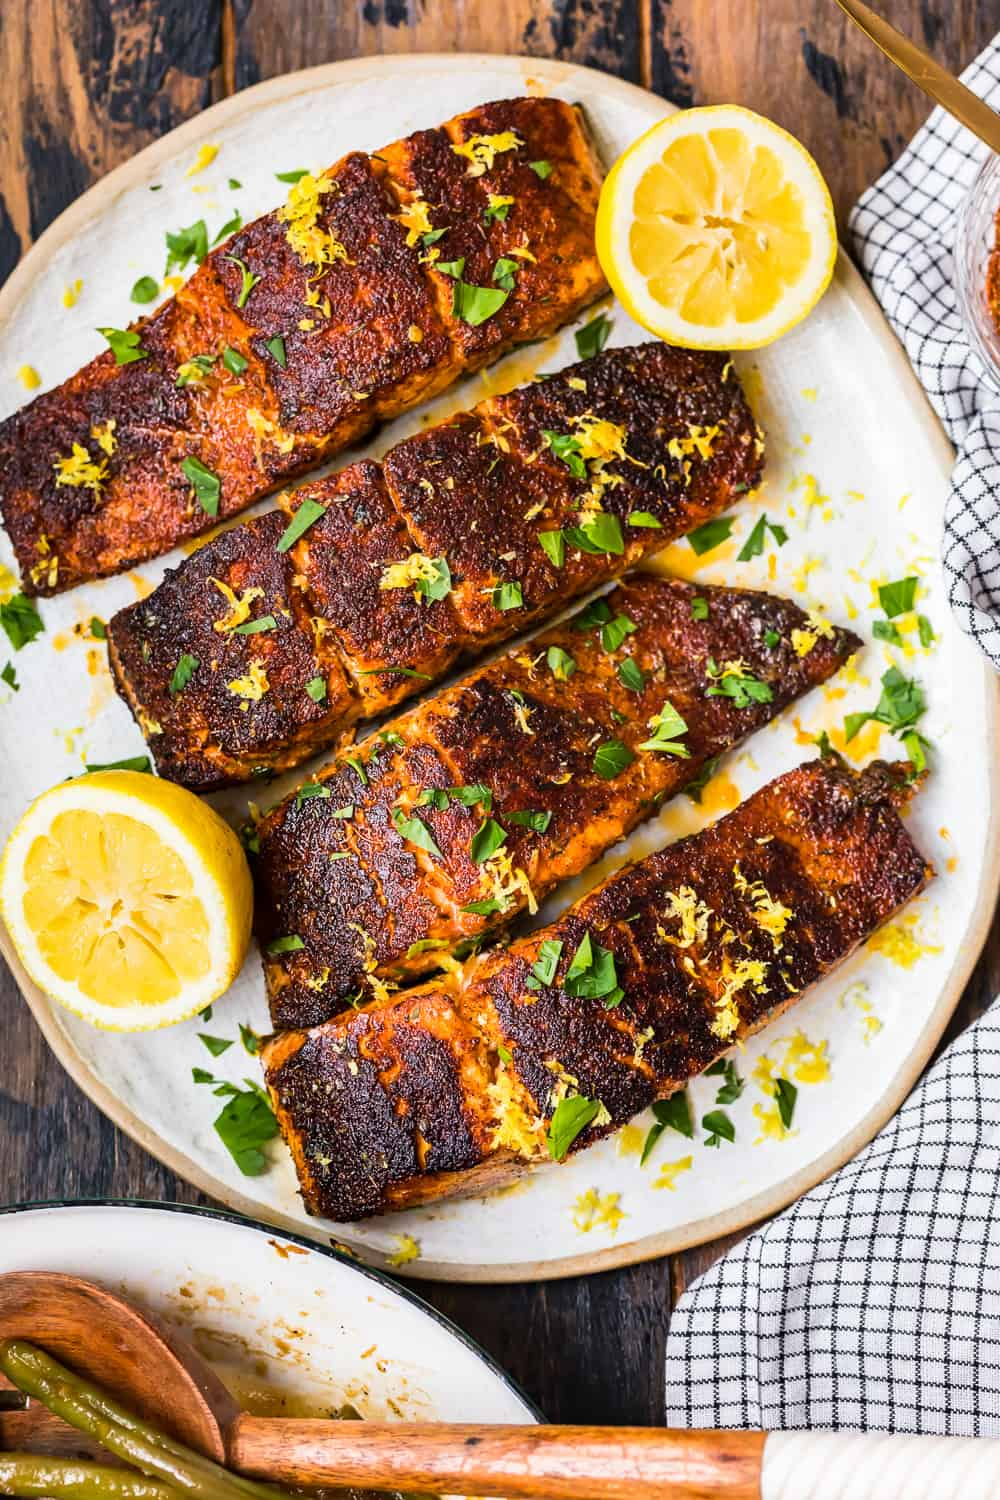 4 salmon fillets on a plate